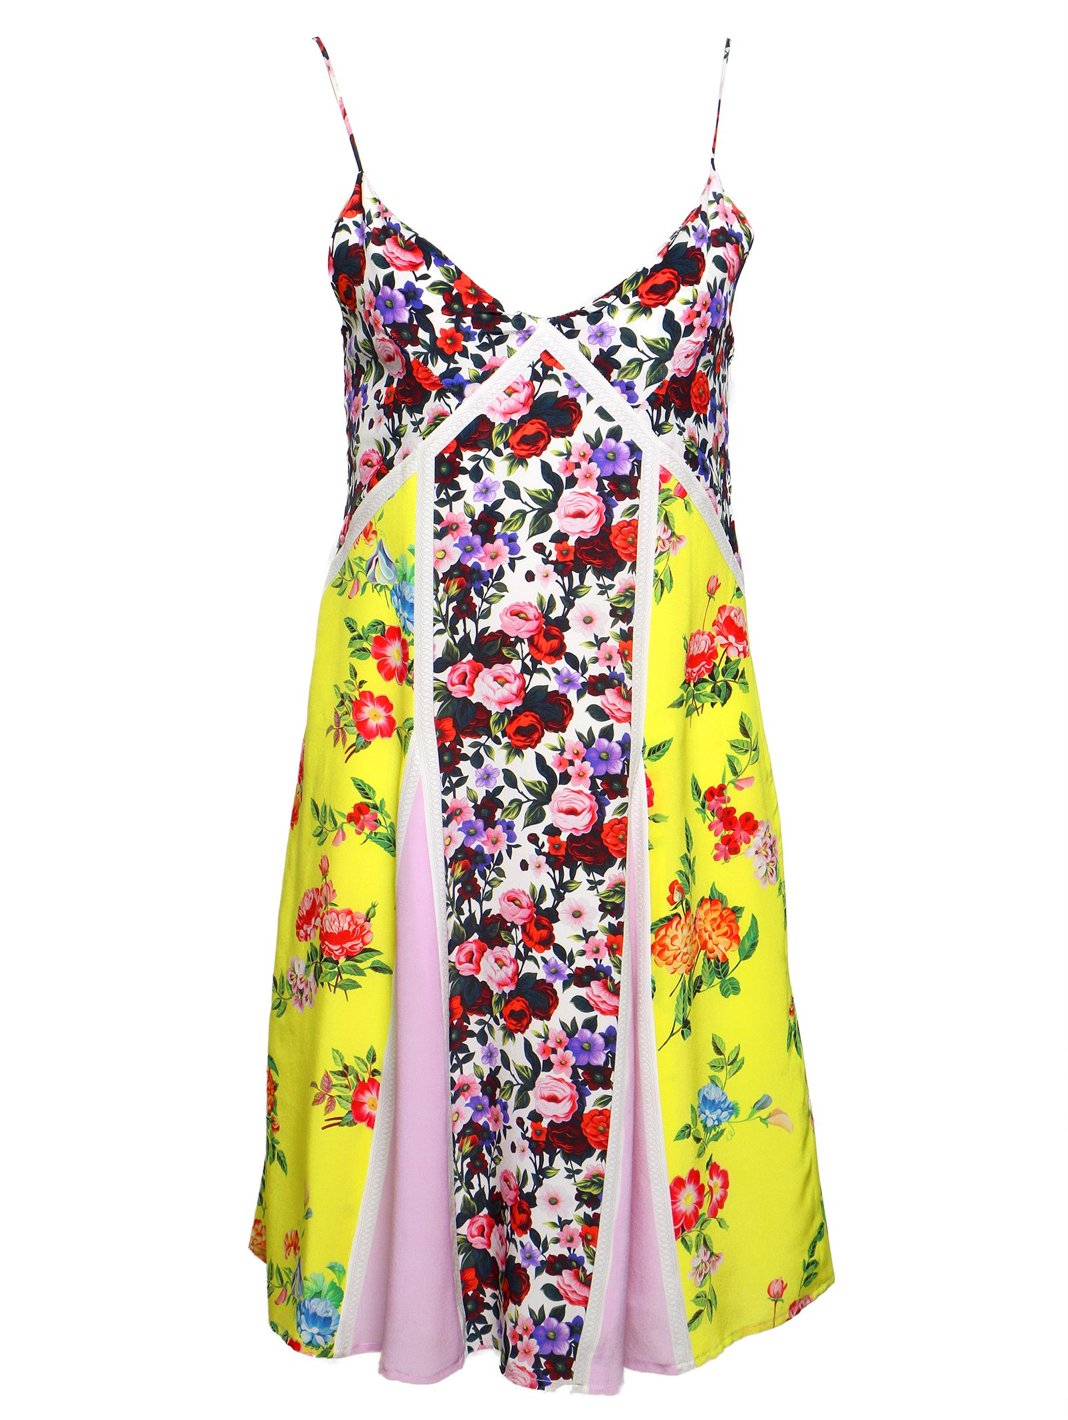 St. Gardenia Print  Dress - The Bobby Boga